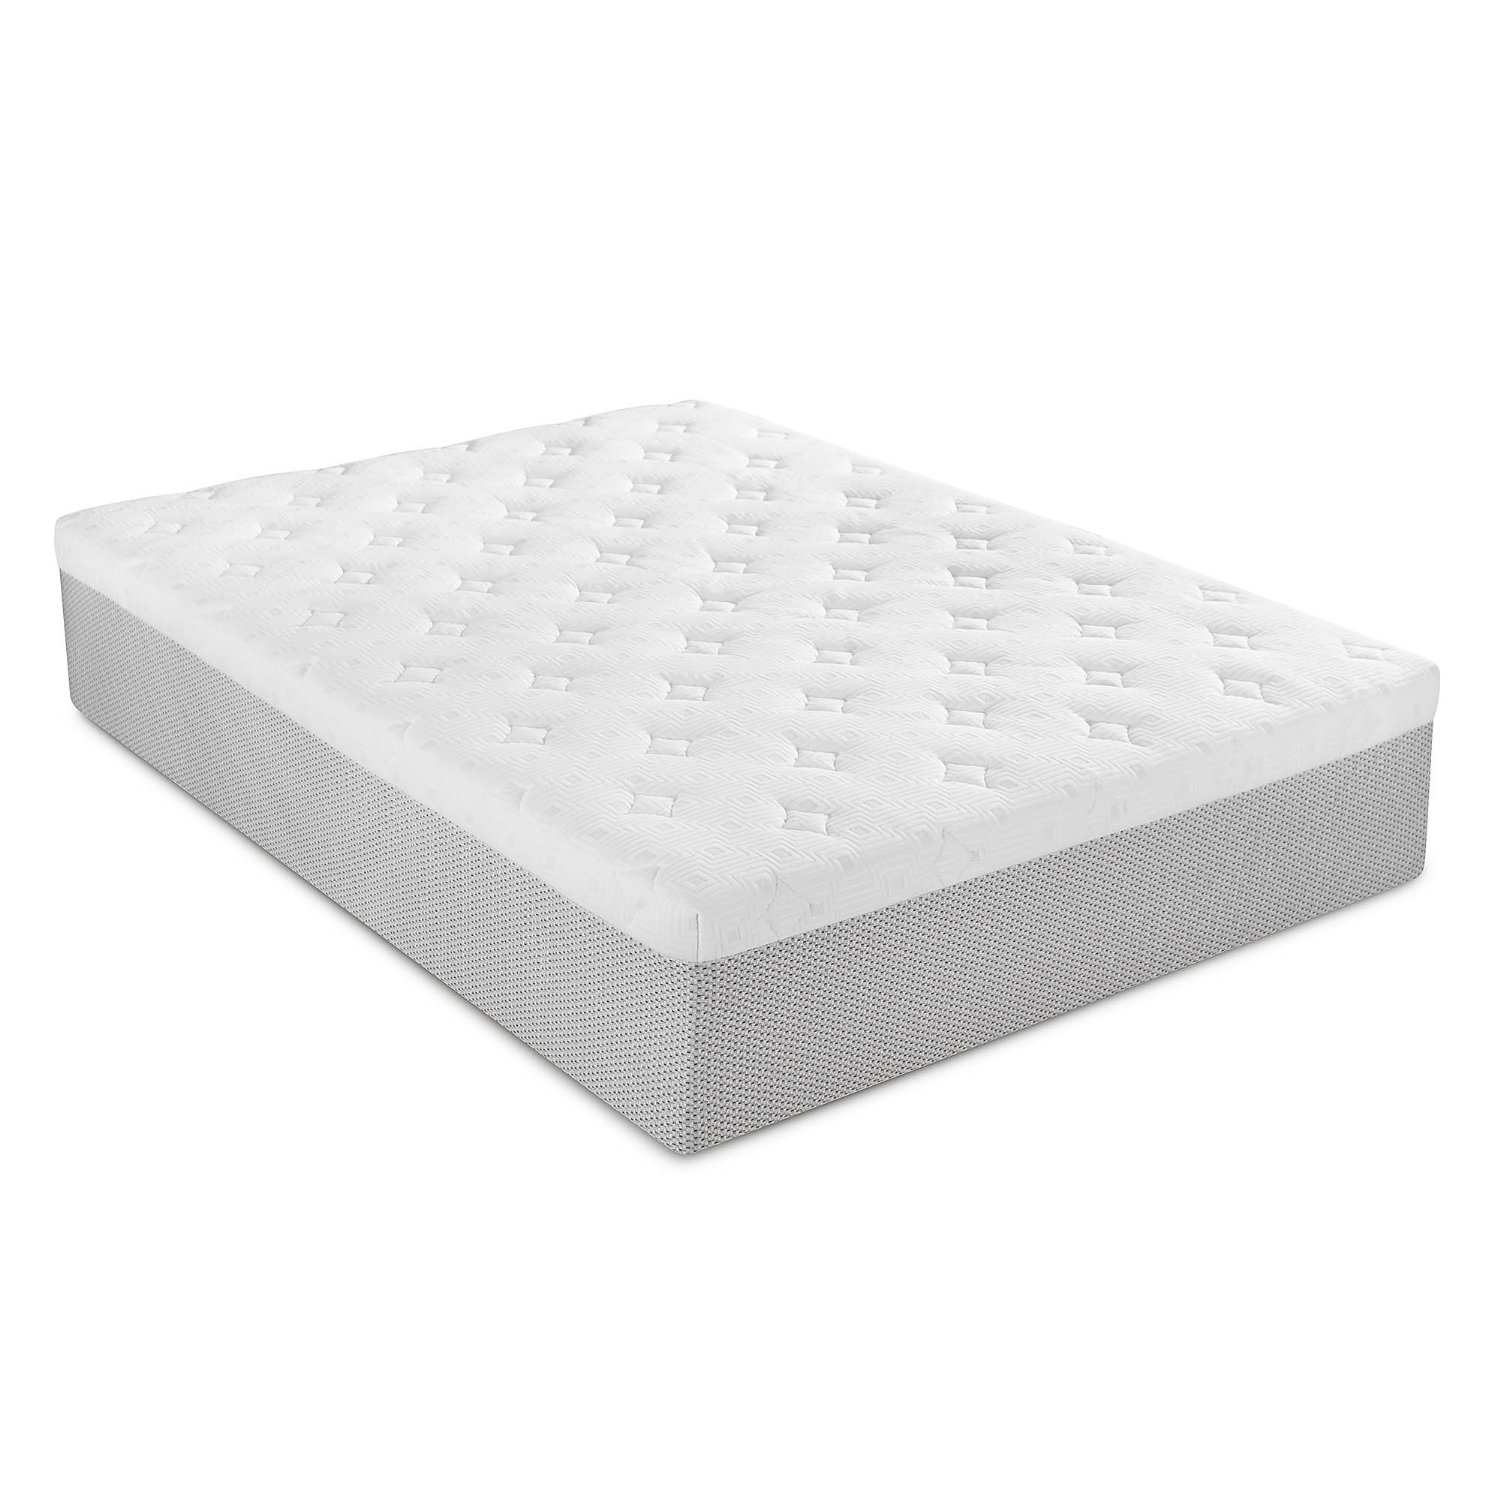 Best Serta Mattress Reviews — Which One Is for You? (2020)